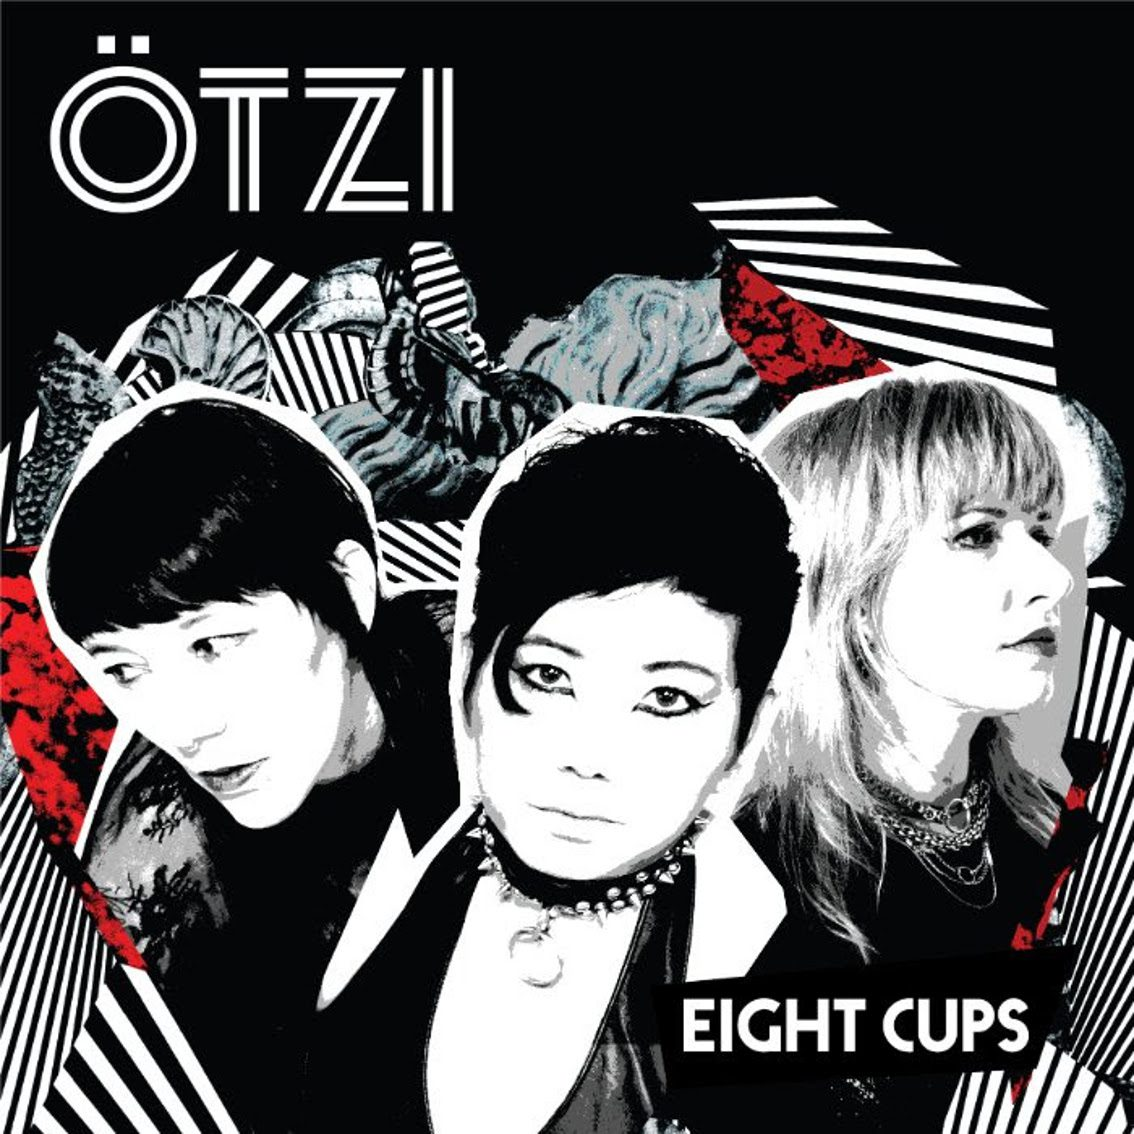 Post-punk group Ötzi reveals 3rd single 'Eight Cups' from upcoming Artoffact Records album 'Storm'